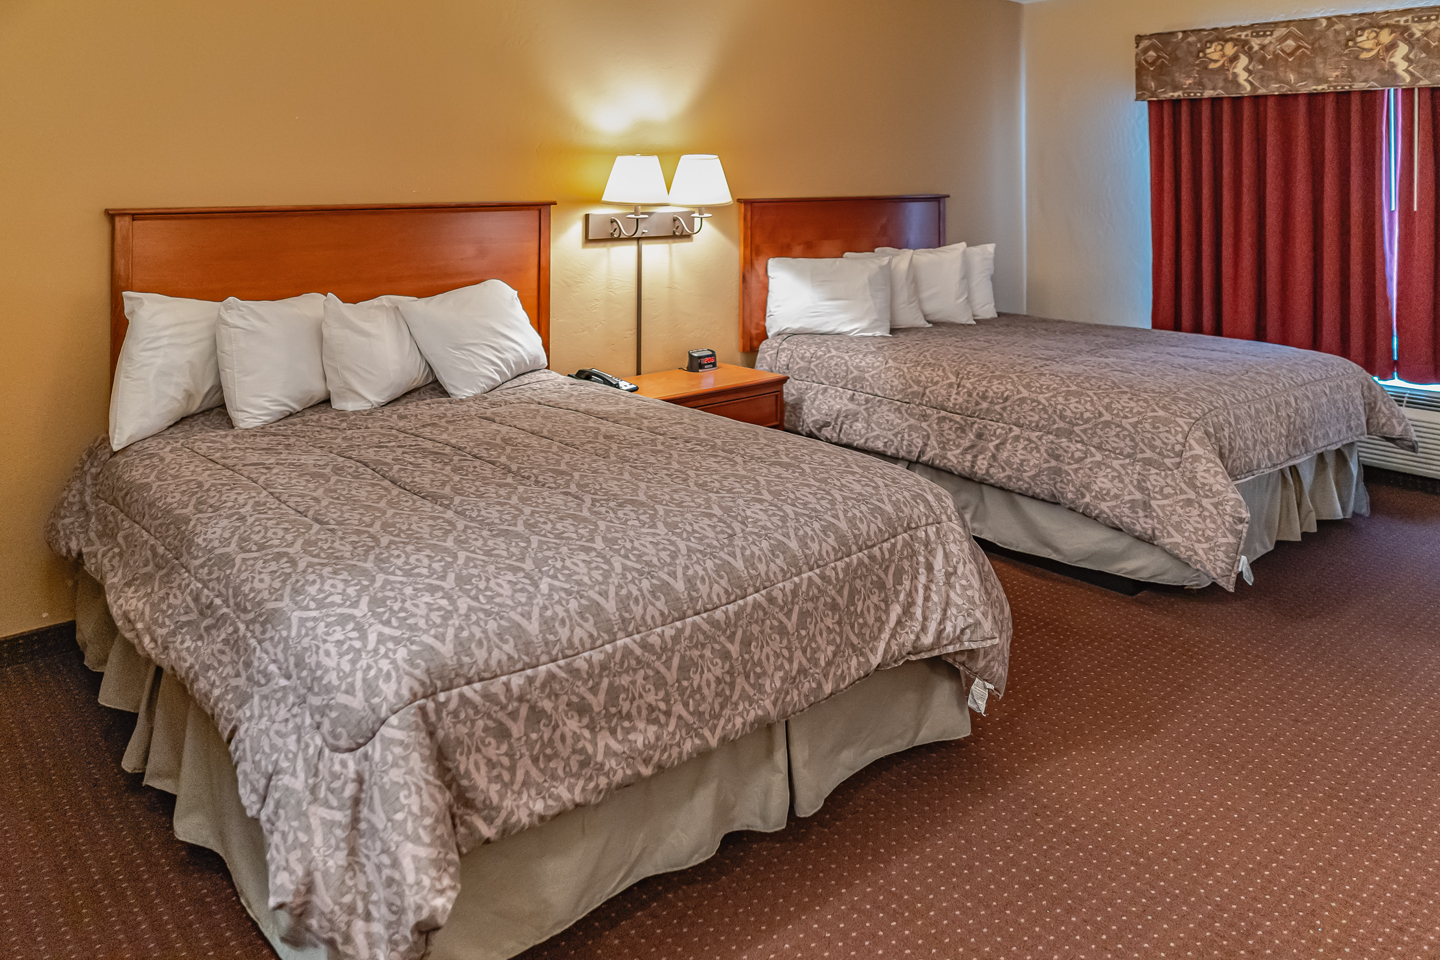 Mole Lake Casino Lodge In Crandon Wisconsin Offers The Best Hotel Deals On Double Queen Rooms